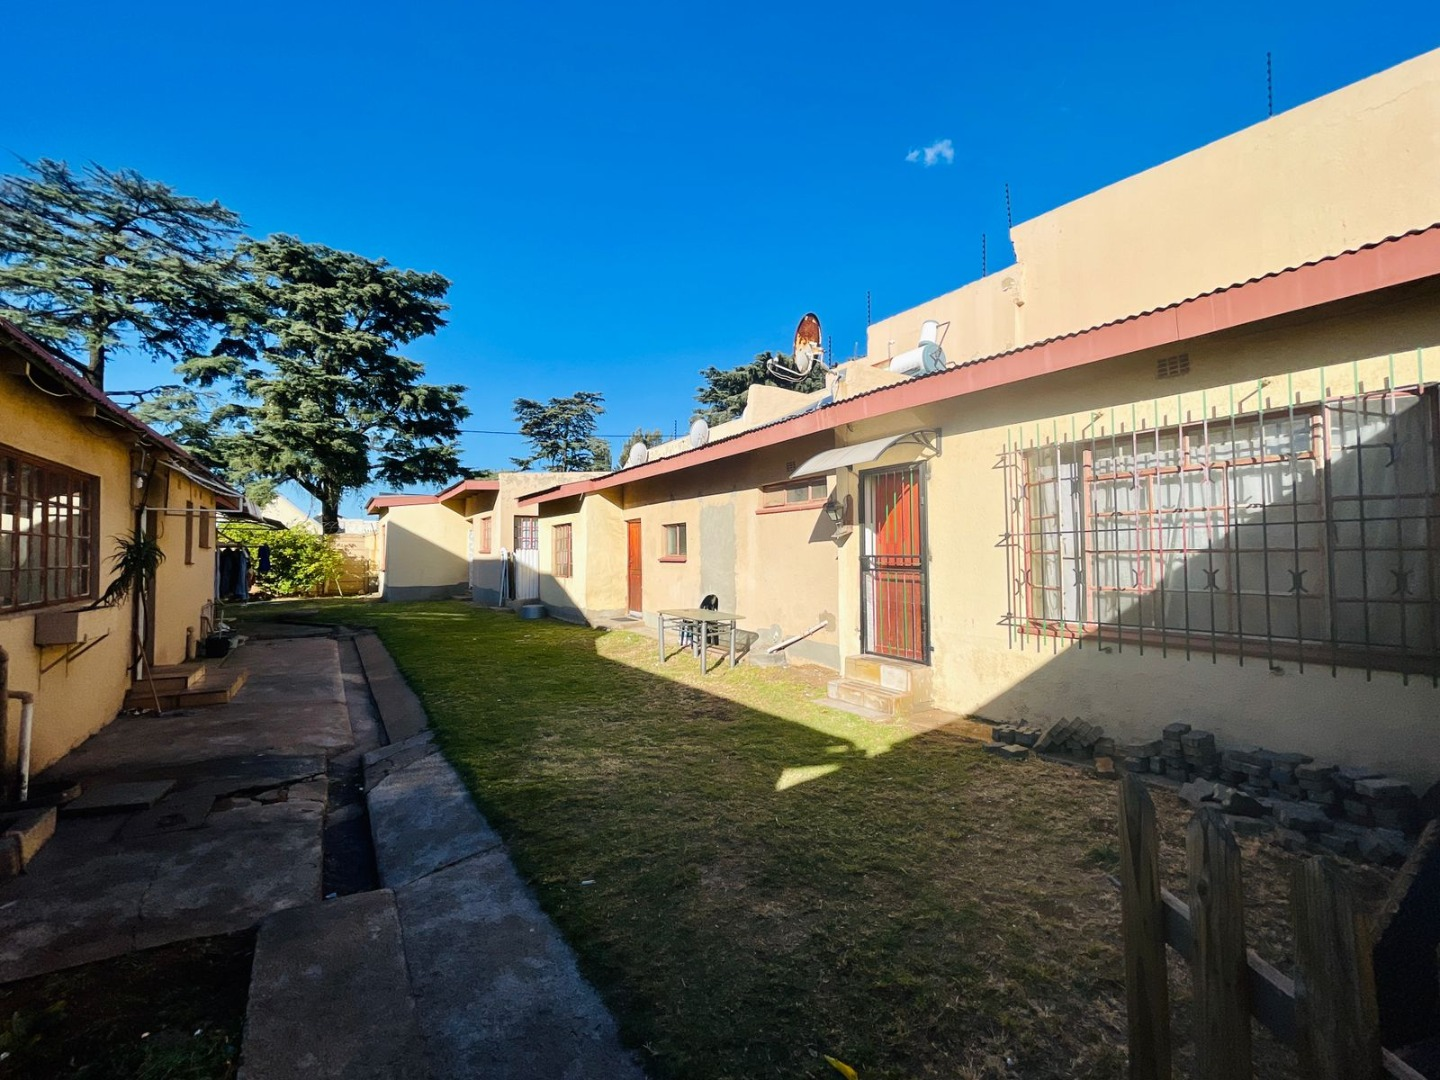 4 Bedroom House For Sale in The Hill